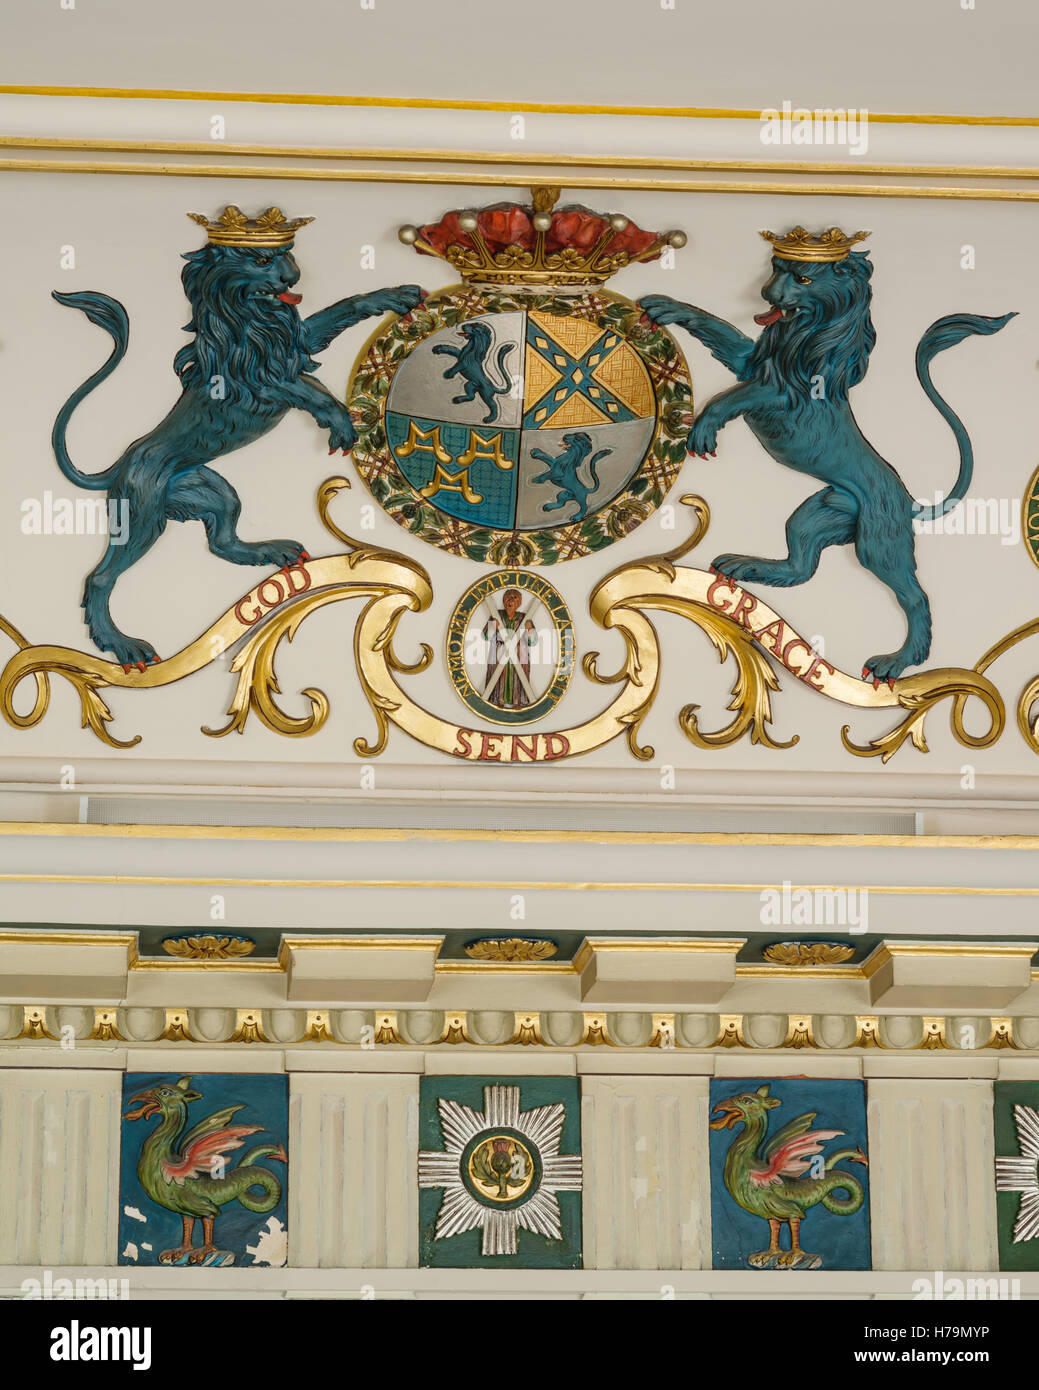 Blue lions on crest reading 'GOD SEND GRACE' IN palladian 18th century Dumfries house, Ayrshire, Scotland - Stock Image